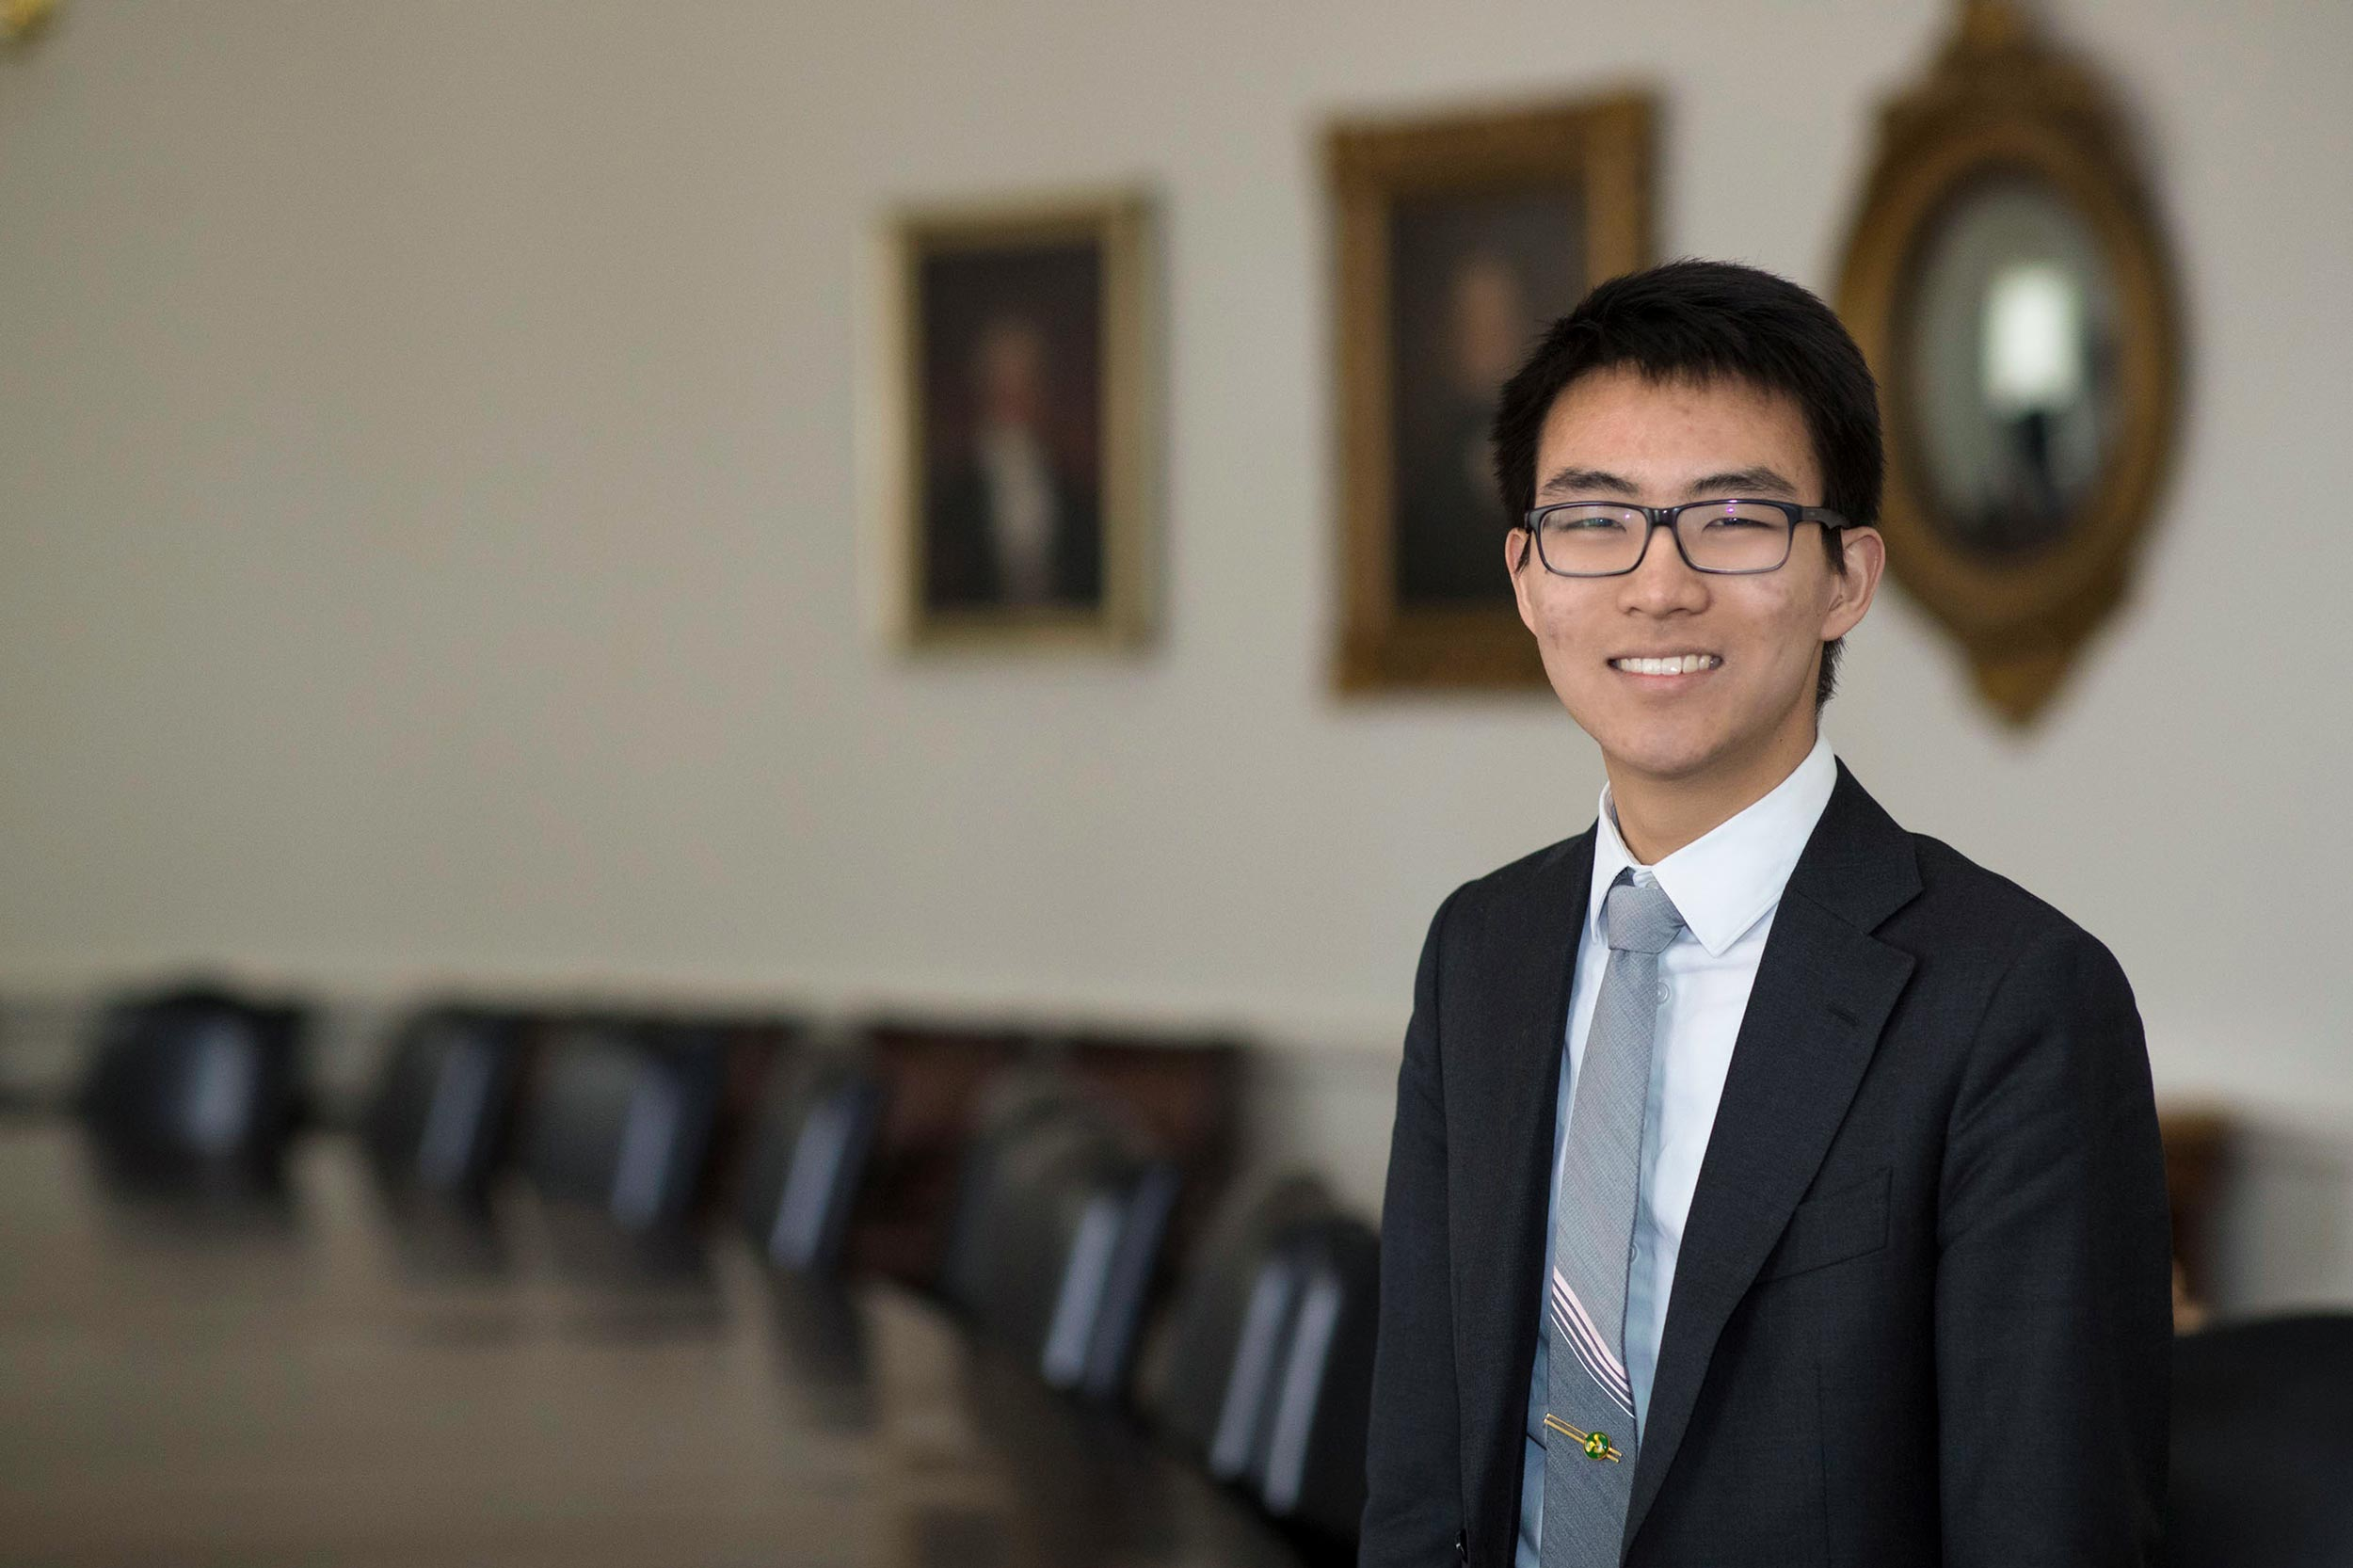 Derrick Wang is an Echols Scholar, a Raven Scholar and a National Merit Scholar. He is also a member of the Jefferson Literary and Debating Society and served on the Honor Committee.